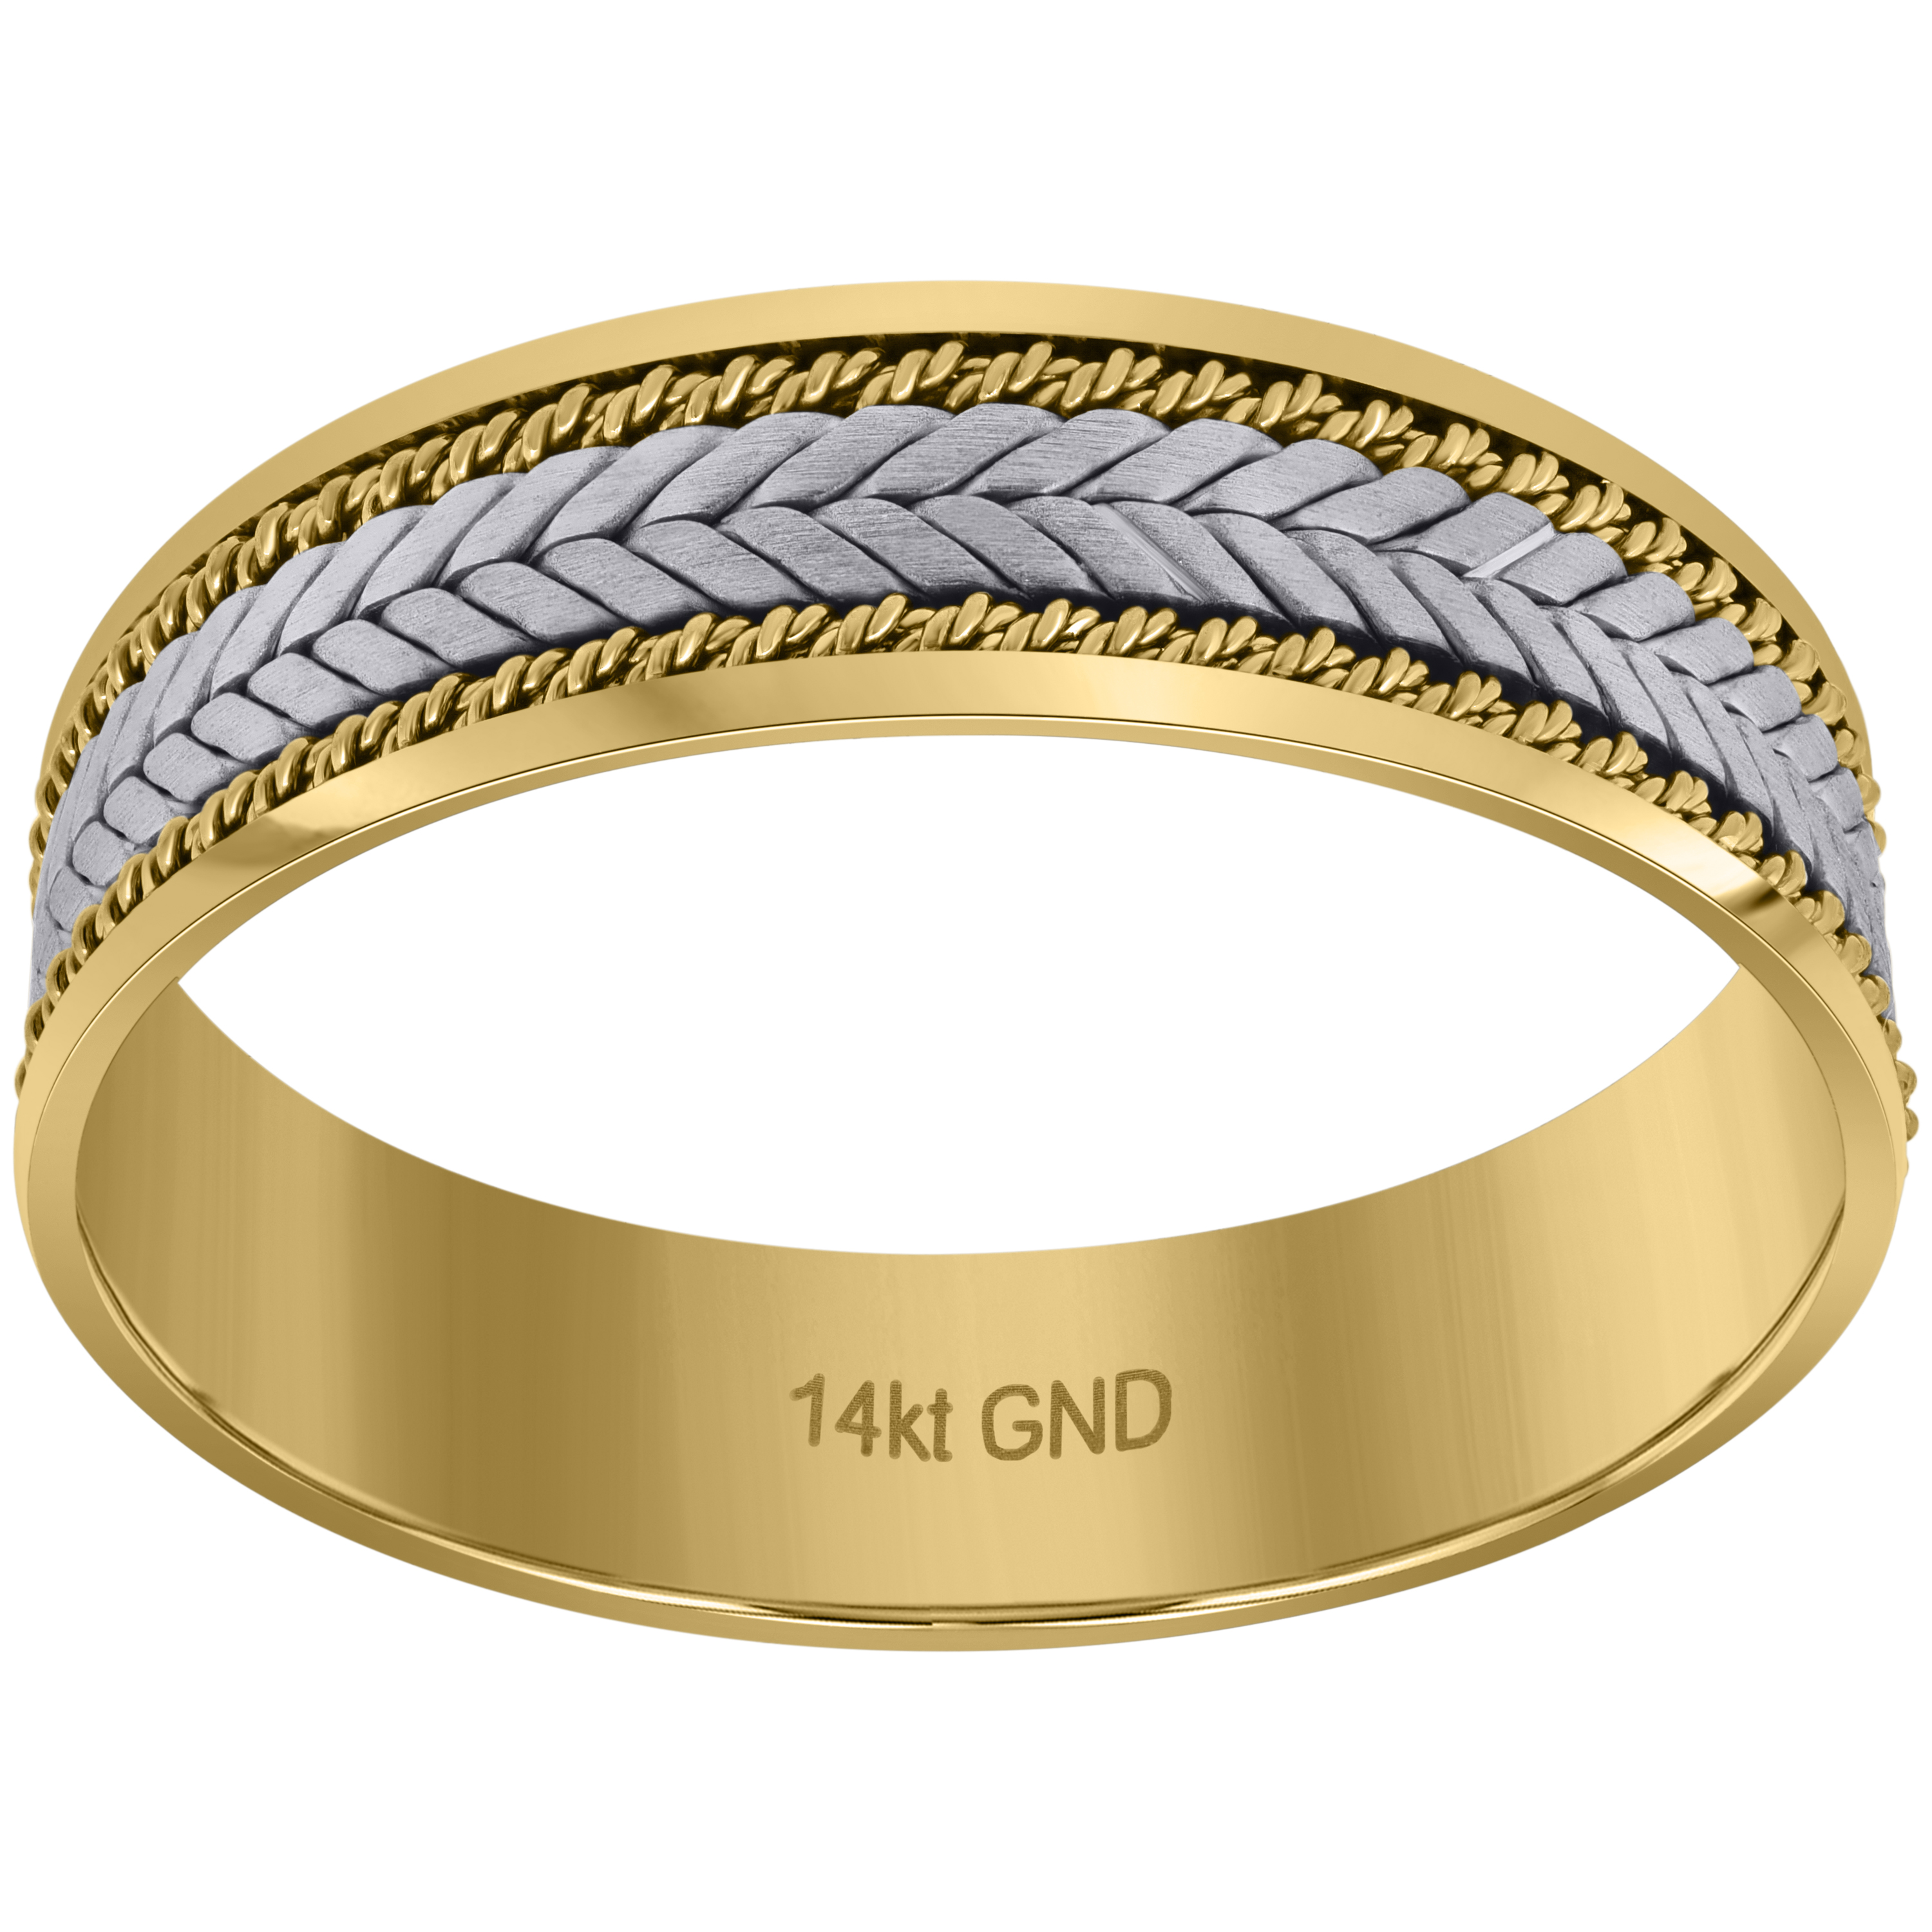 Wedding Jewelry 14kt Gold Mens Twotone Braided Center Double Ropes Twisted Sides 65mmsz12: Twisted Two Tone Wedding Bands At Websimilar.org